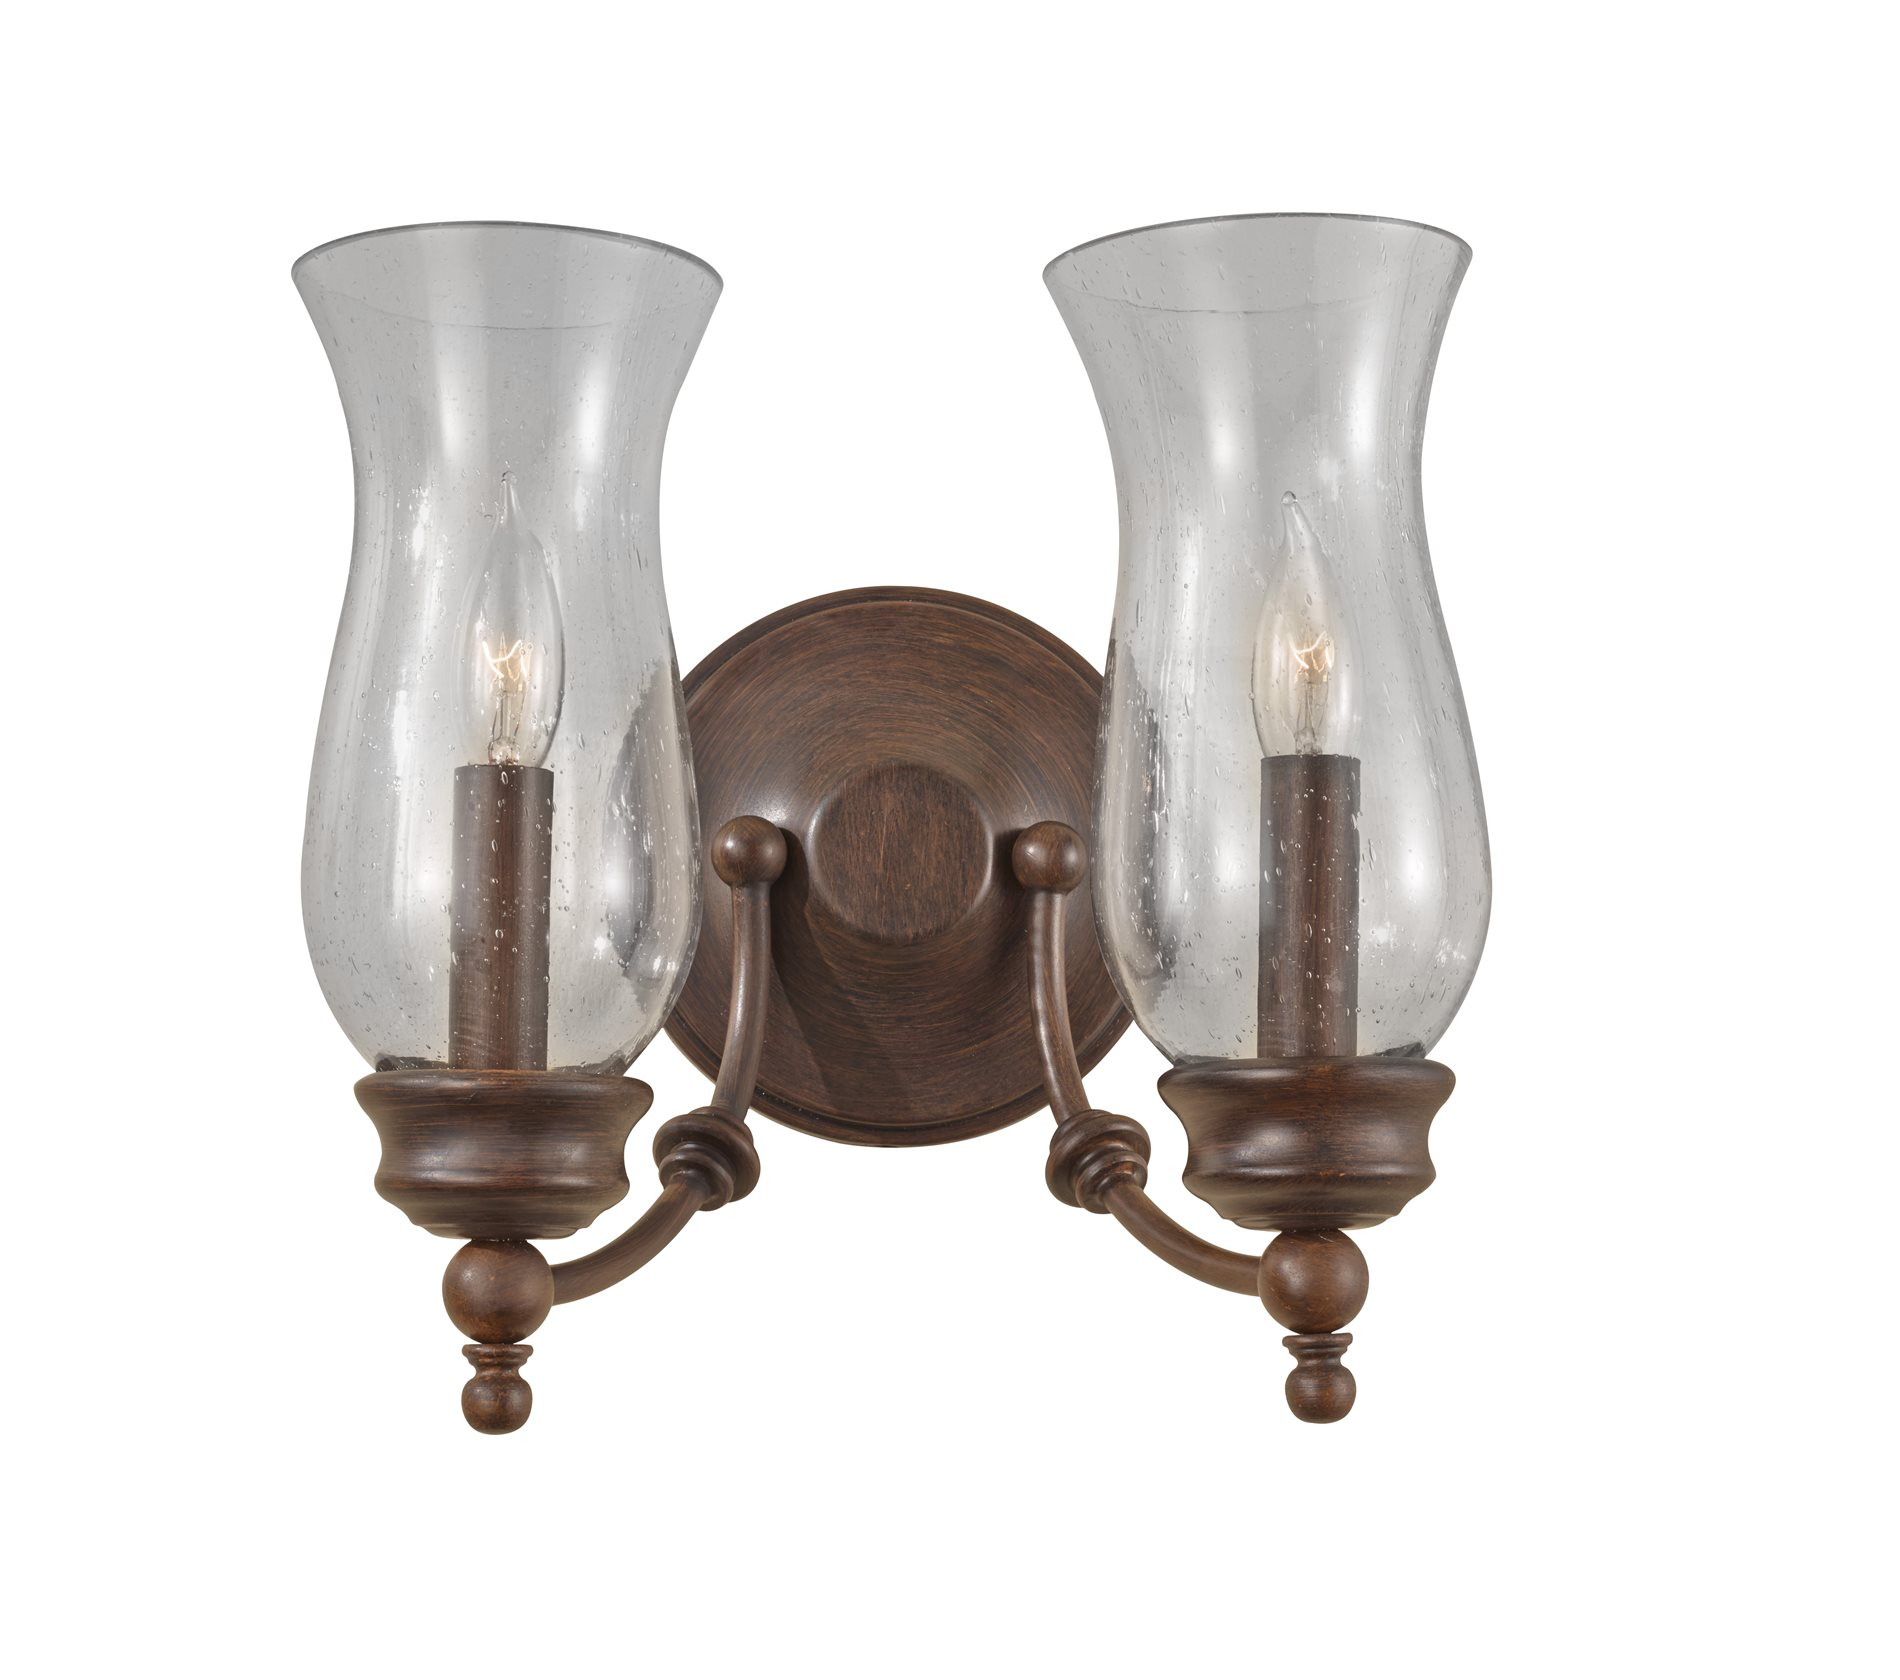 Wall Sconces Murray Feiss : Murray Feiss WB1598HTBZ Pickering Lane Traditional Wall Sconce MRF-WB1598-HTBZ